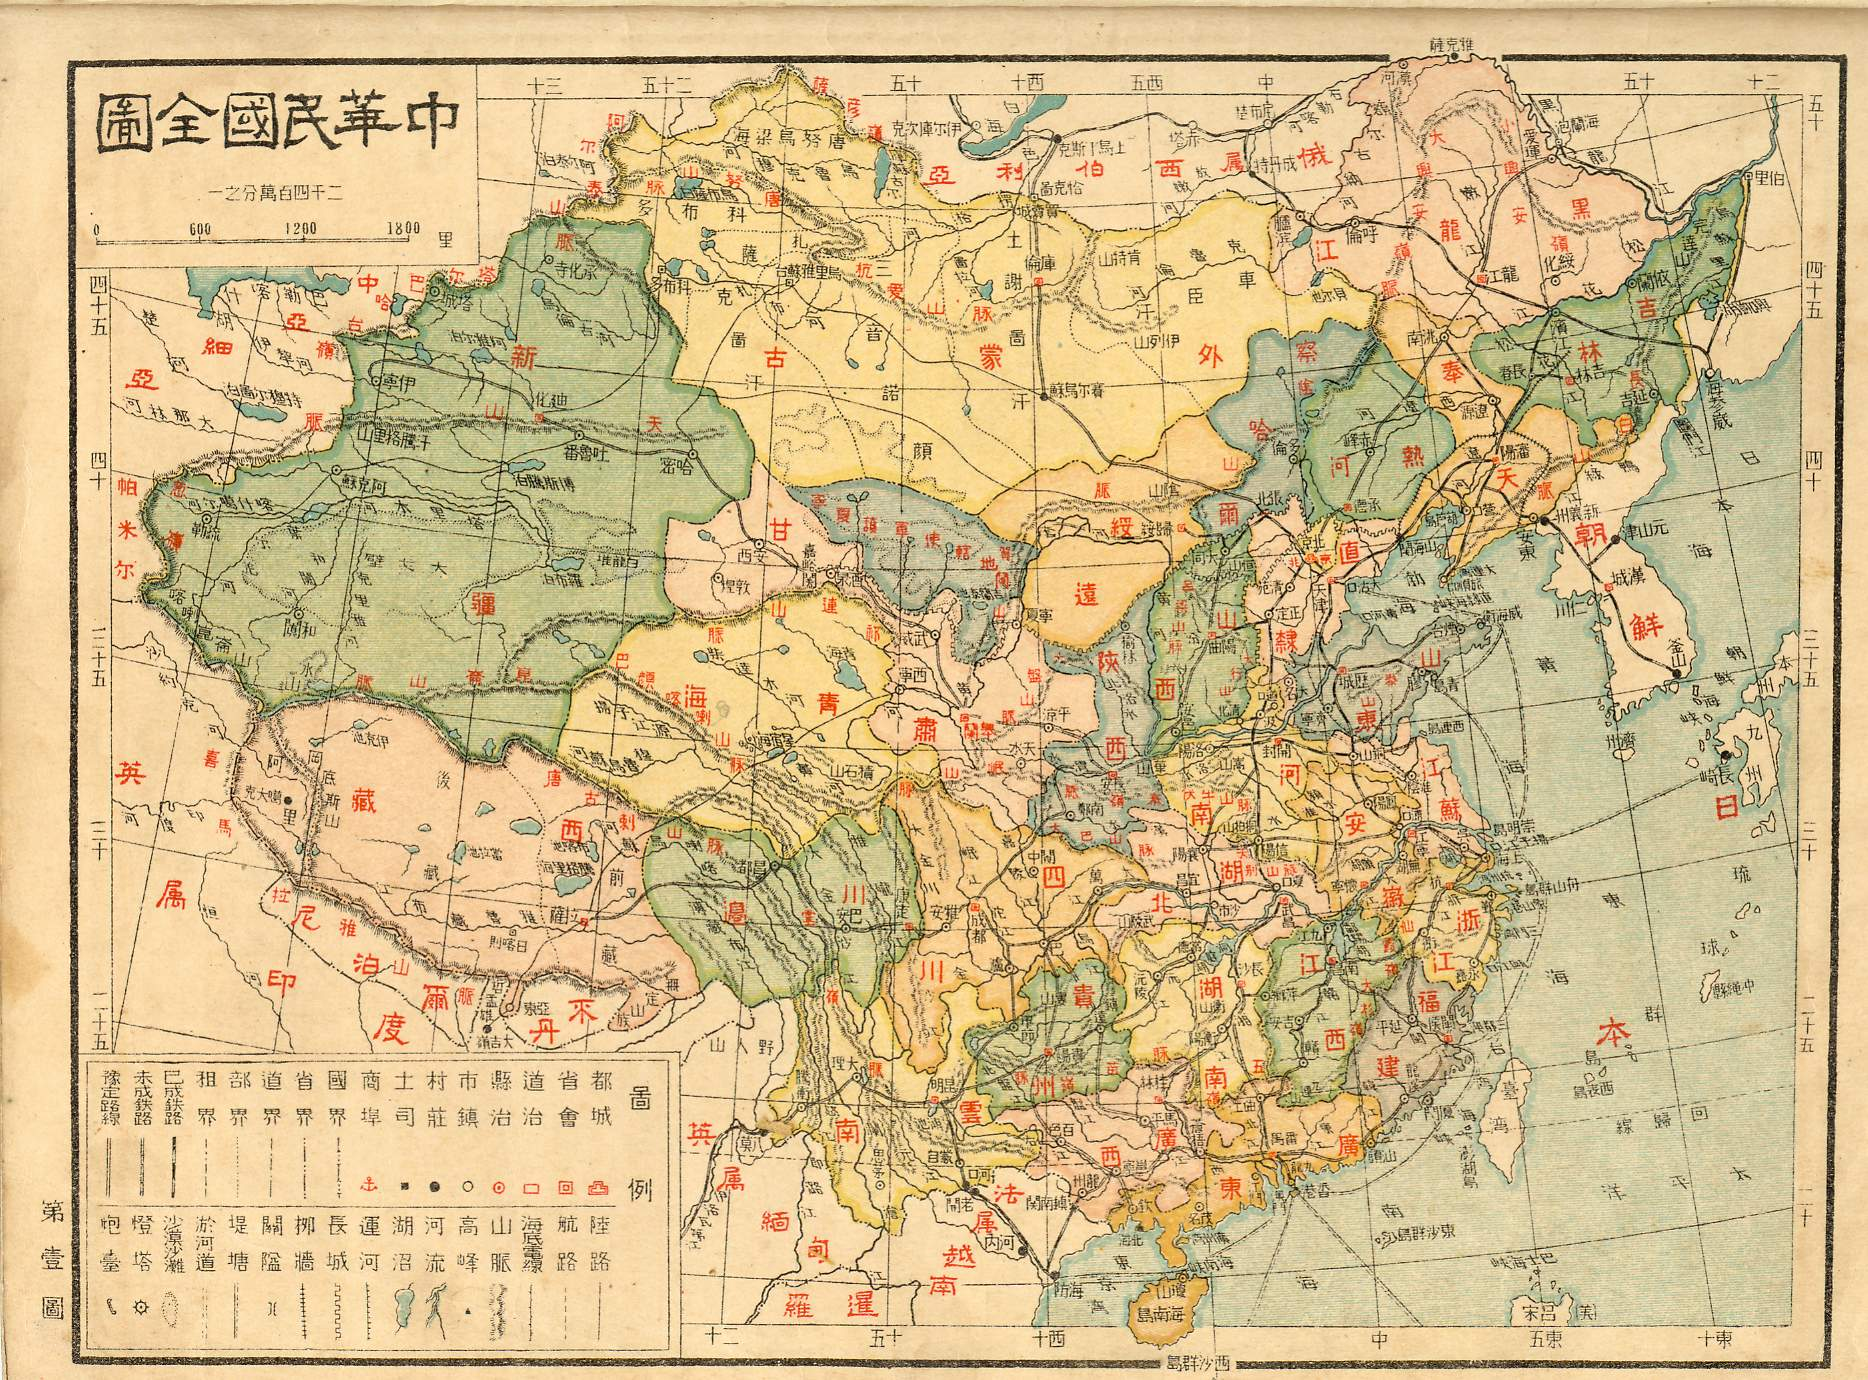 China_old_map.jpg